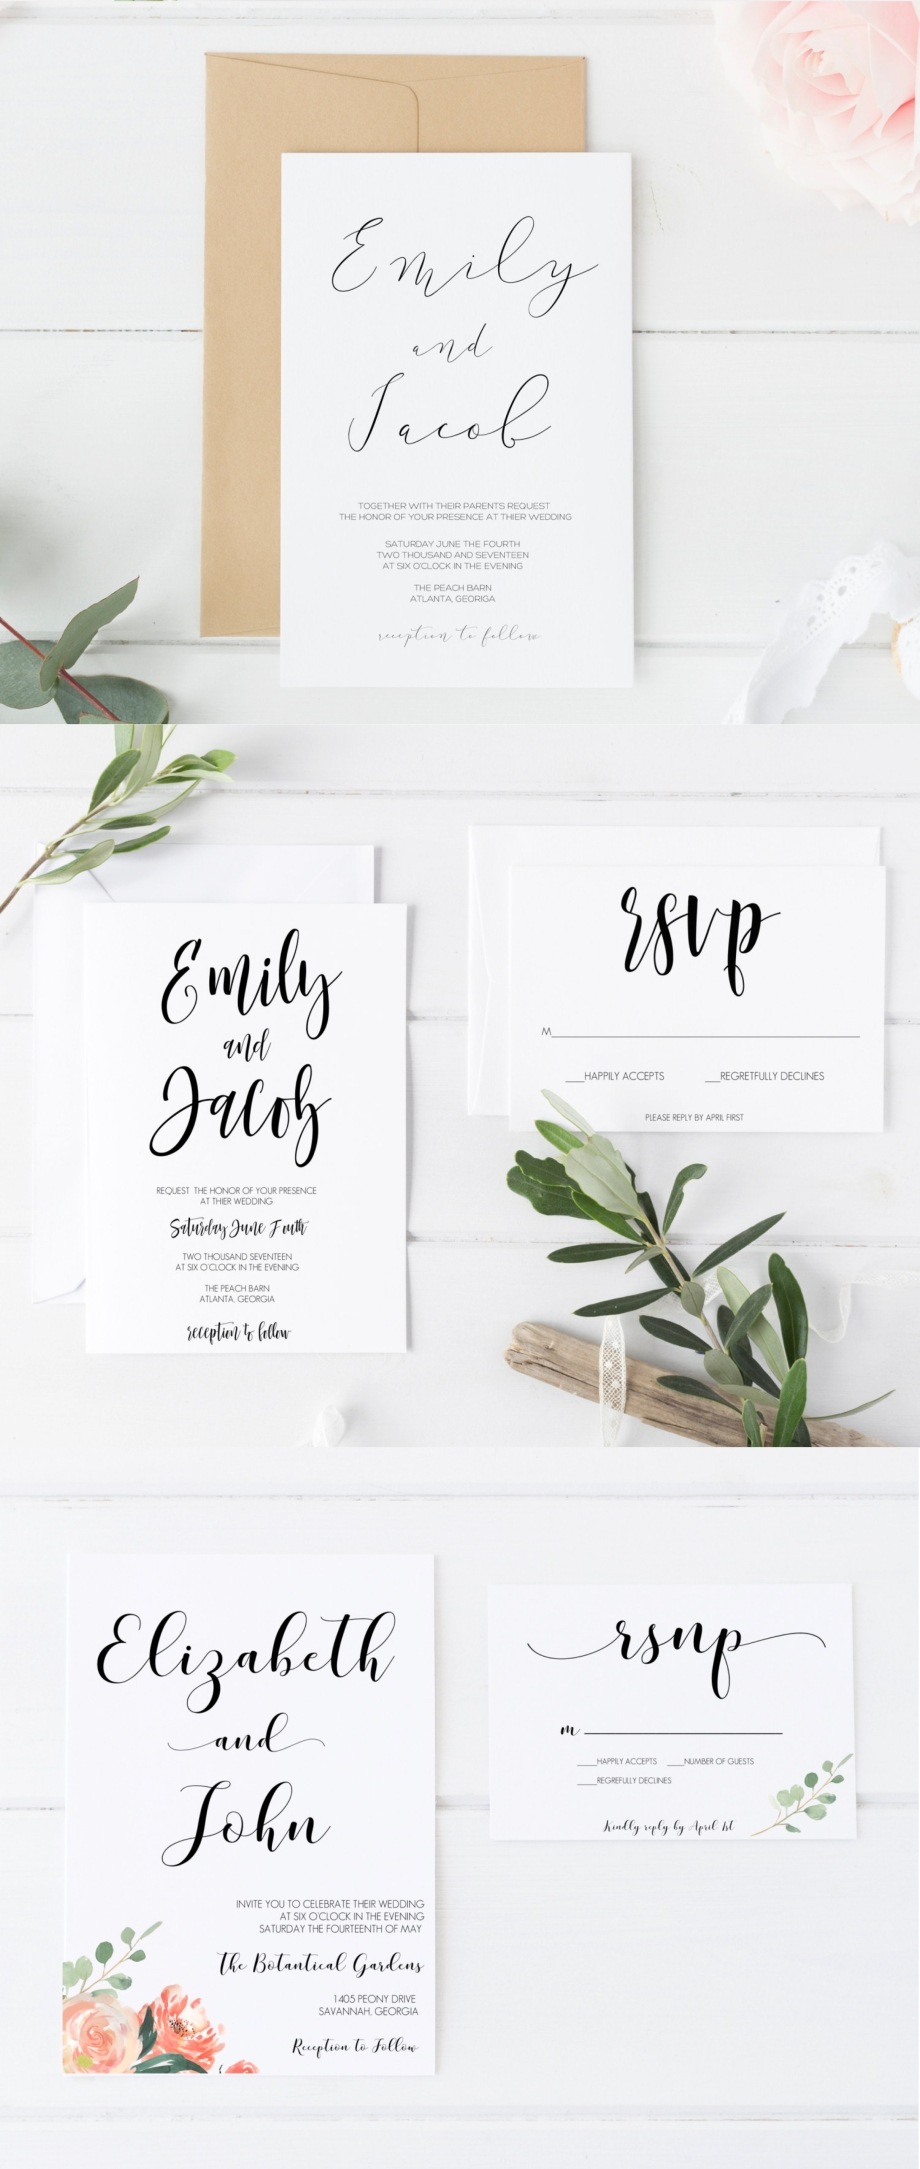 Top 5 Etsy Shops for Wedding Invitations | Luxe & Honey